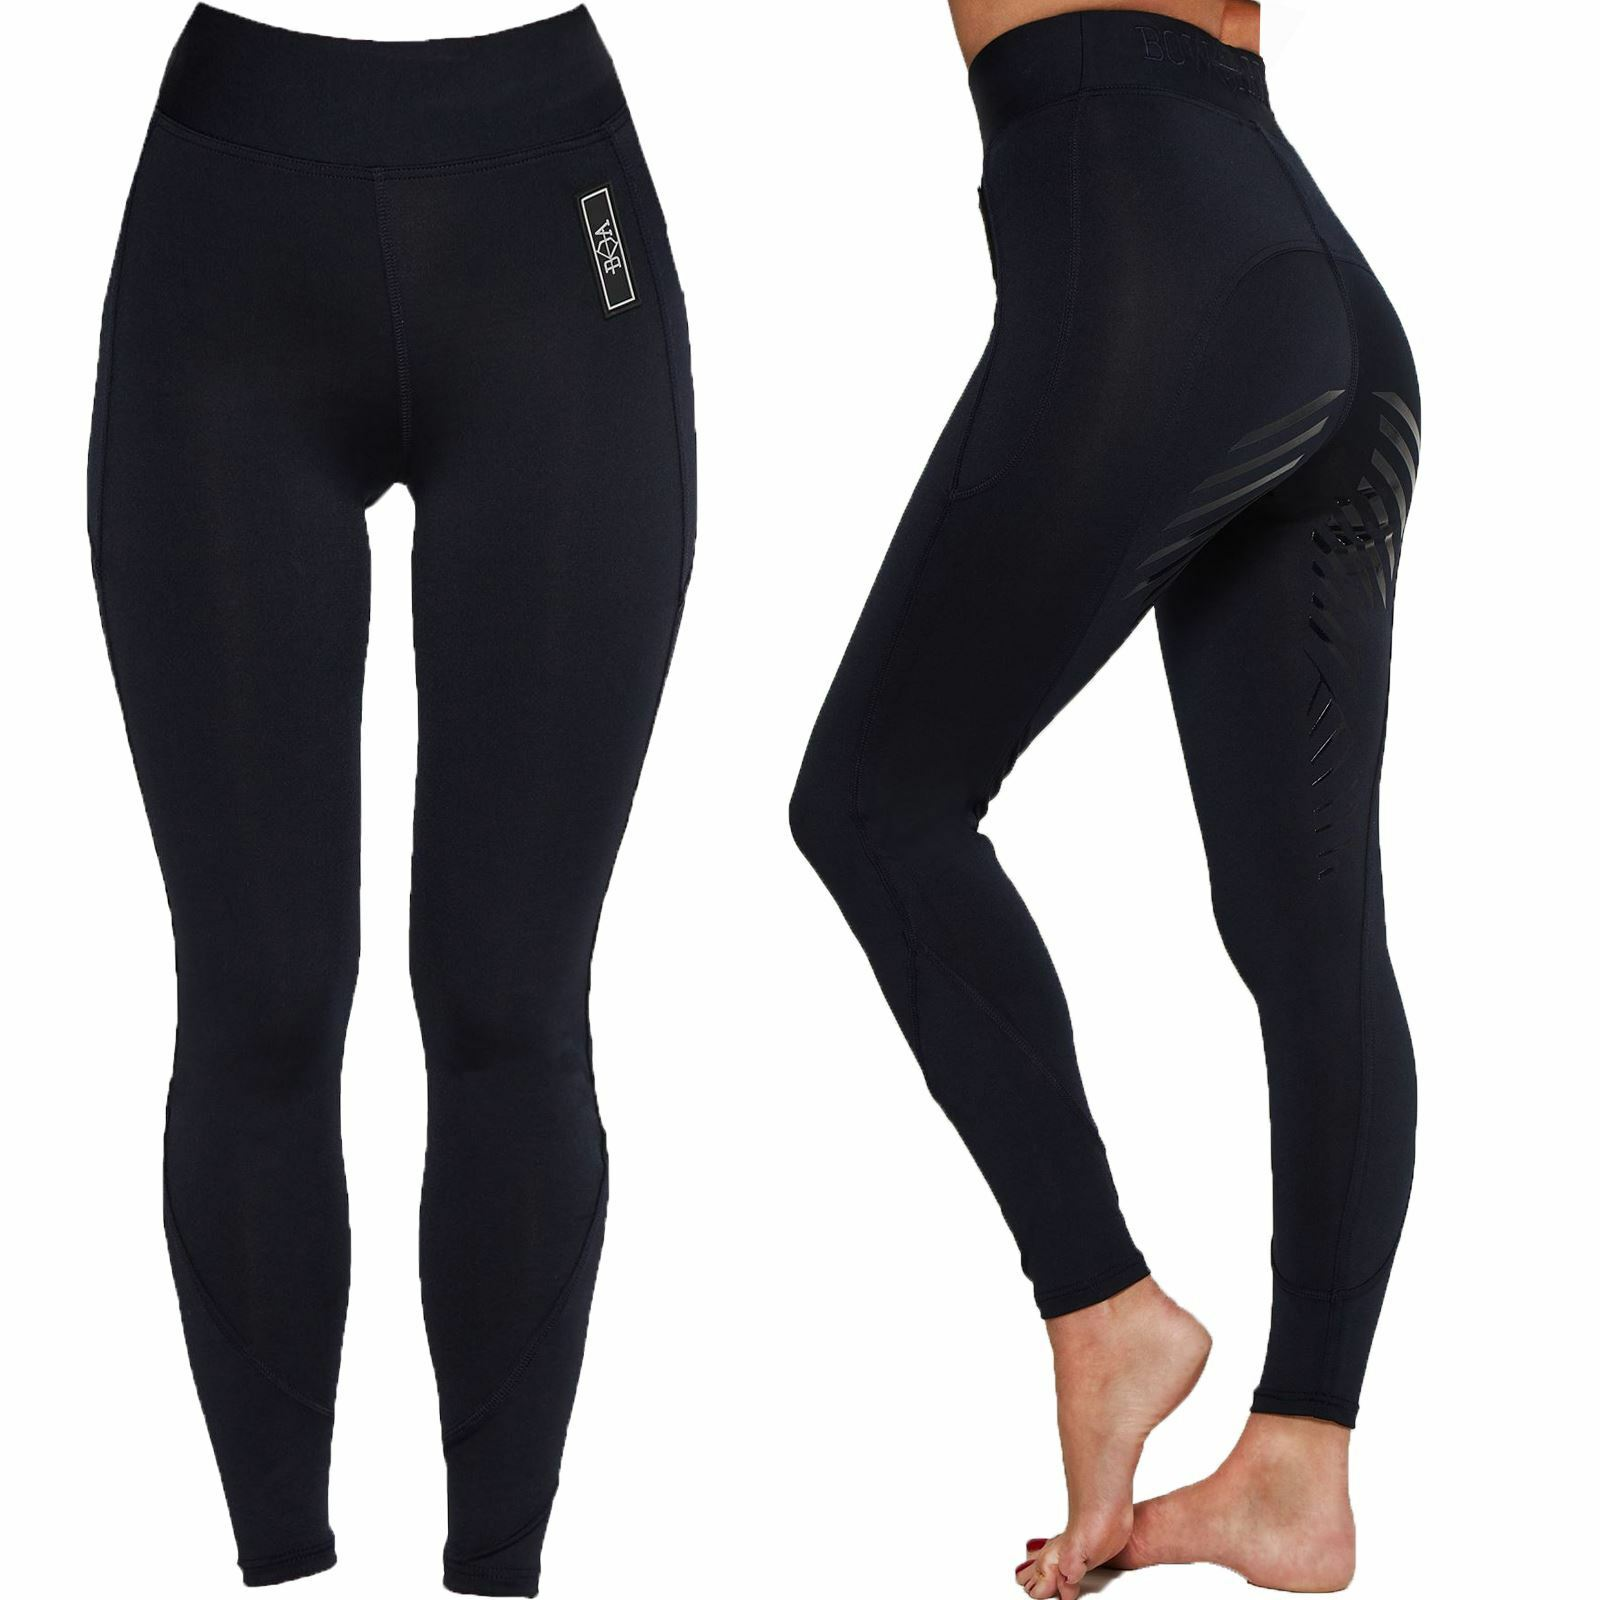 Bow & Arrow Ladies Horse Riding Breeches Leggings Tights